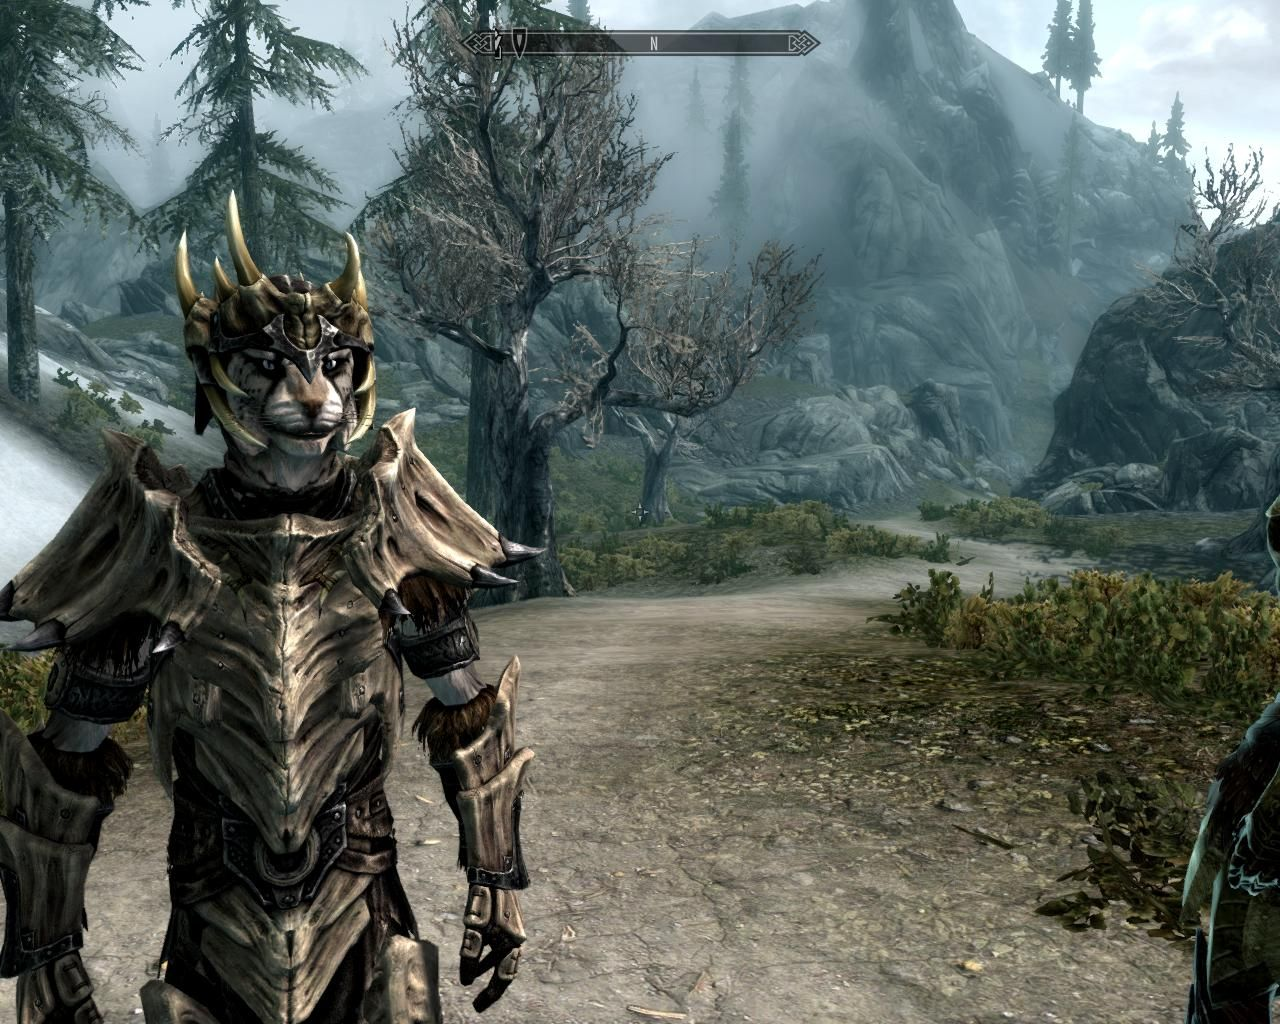 Dragon Armour To Jagged Crown Replacements Armor Images Dragon Armor Skyrim Dragon Armor Skyrim Dragon This article has been viewed 116,250 times. jagged crown replacements armor images